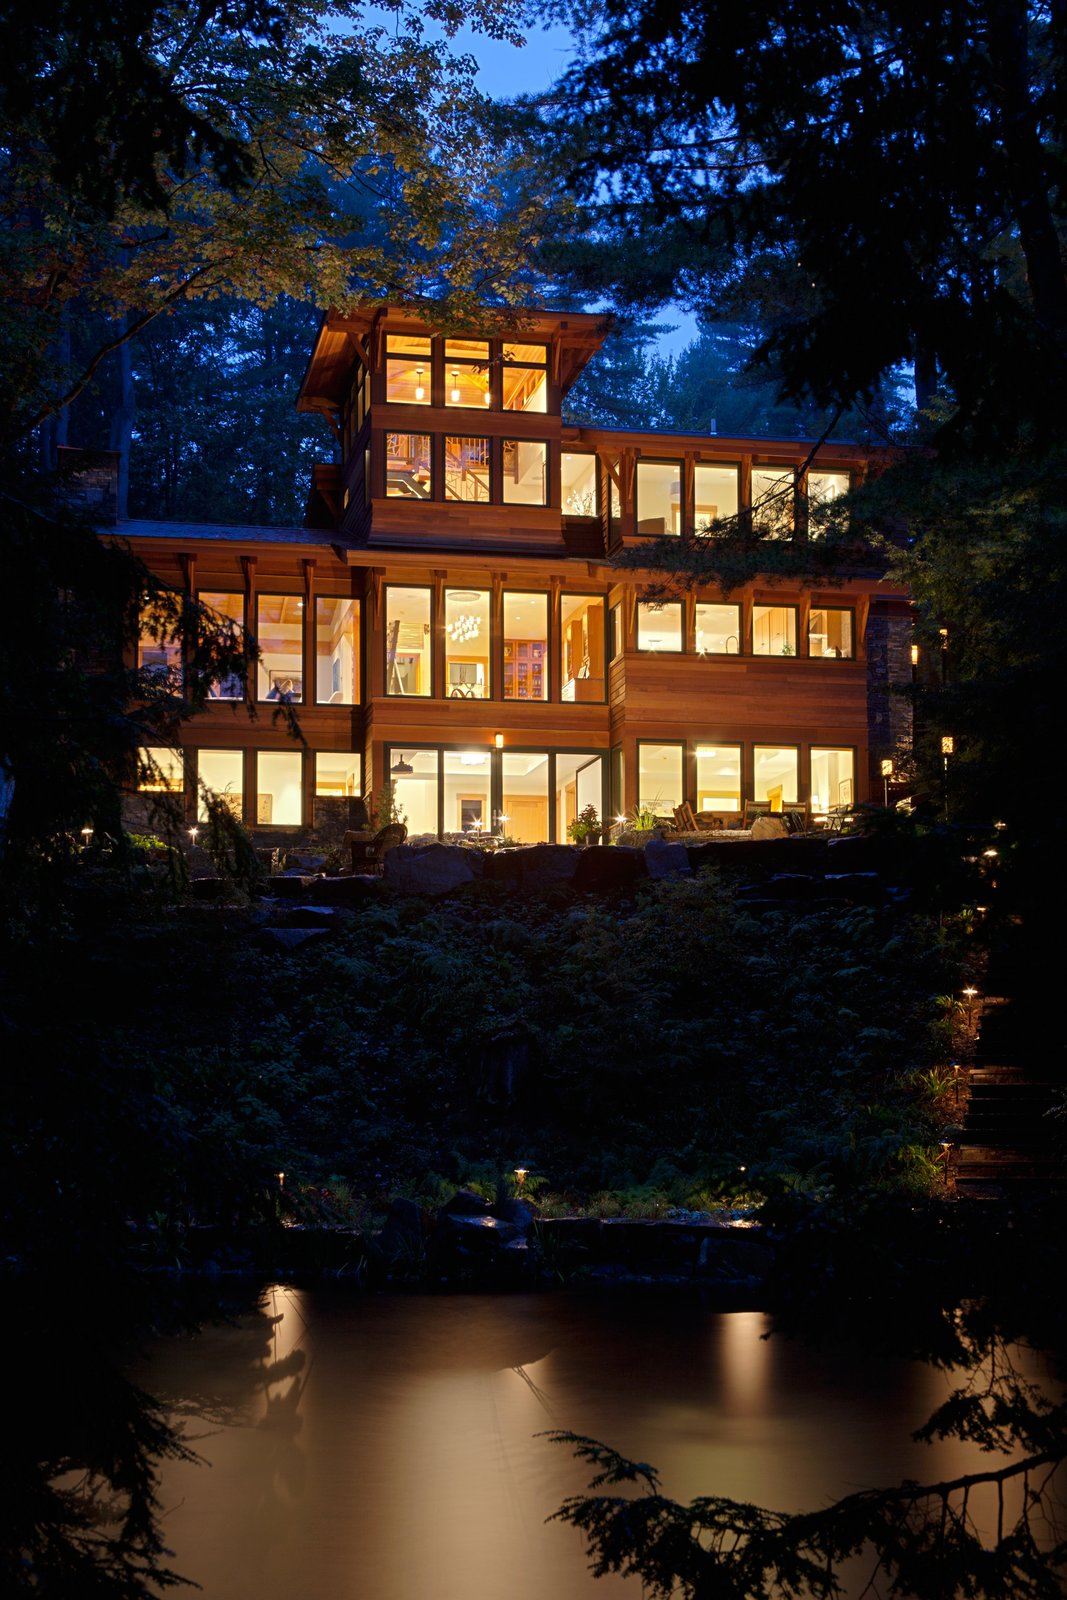 Nighttime view of house from Lake Luzerne  Fourth Lake Summer House by Phinney Design Group